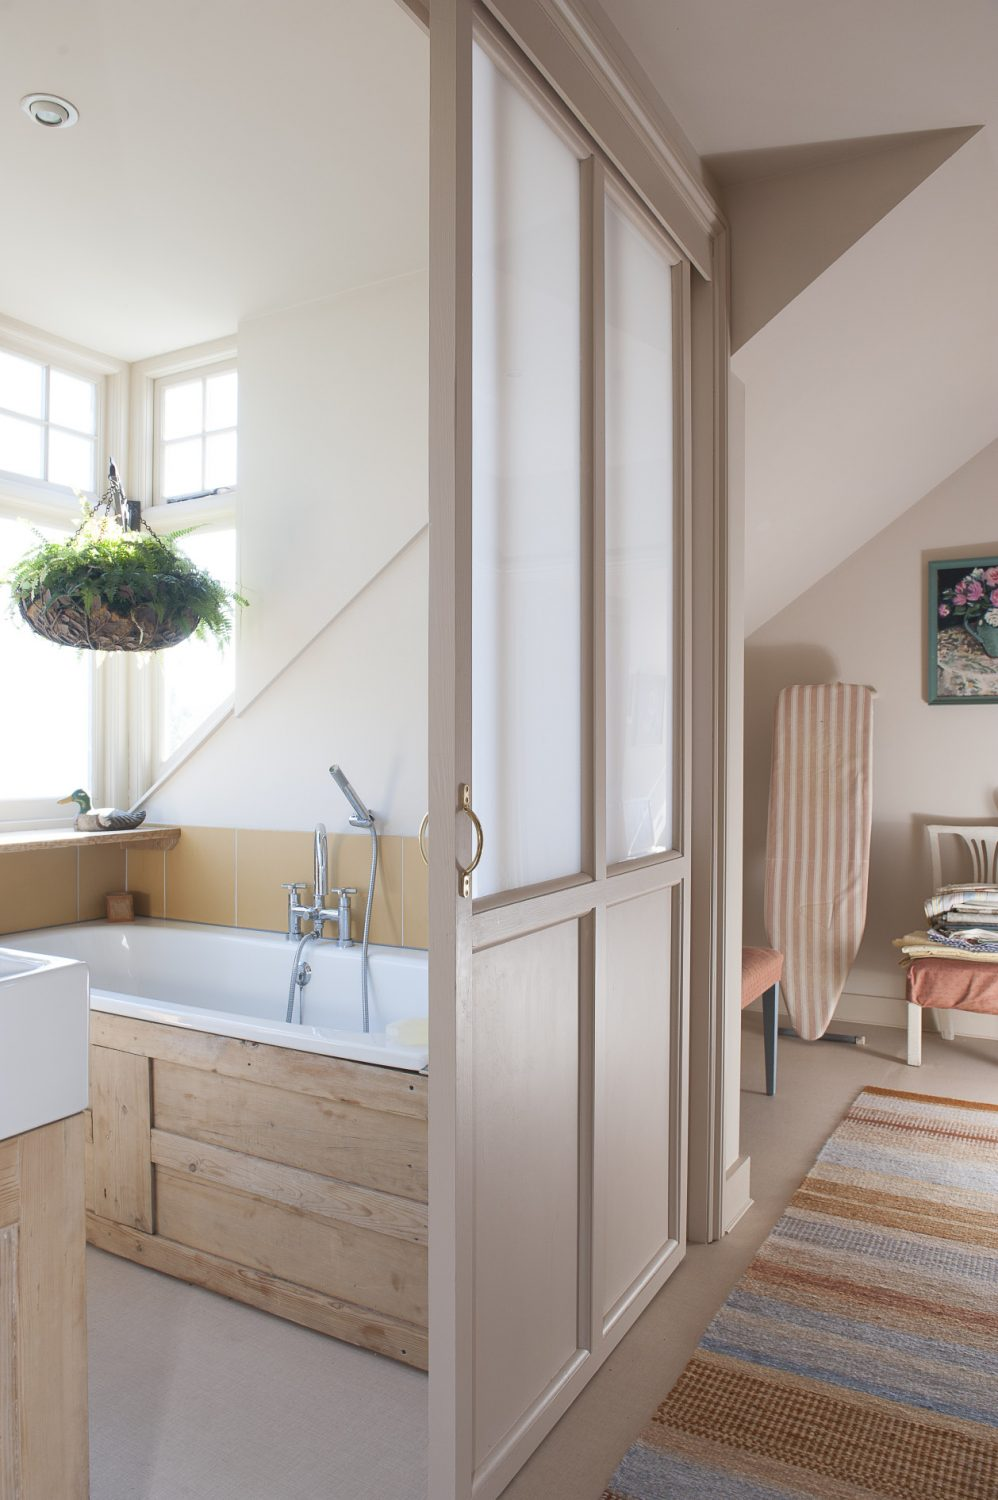 The dormer was added on to make room for a new bathroom – with a space-saving sliding door